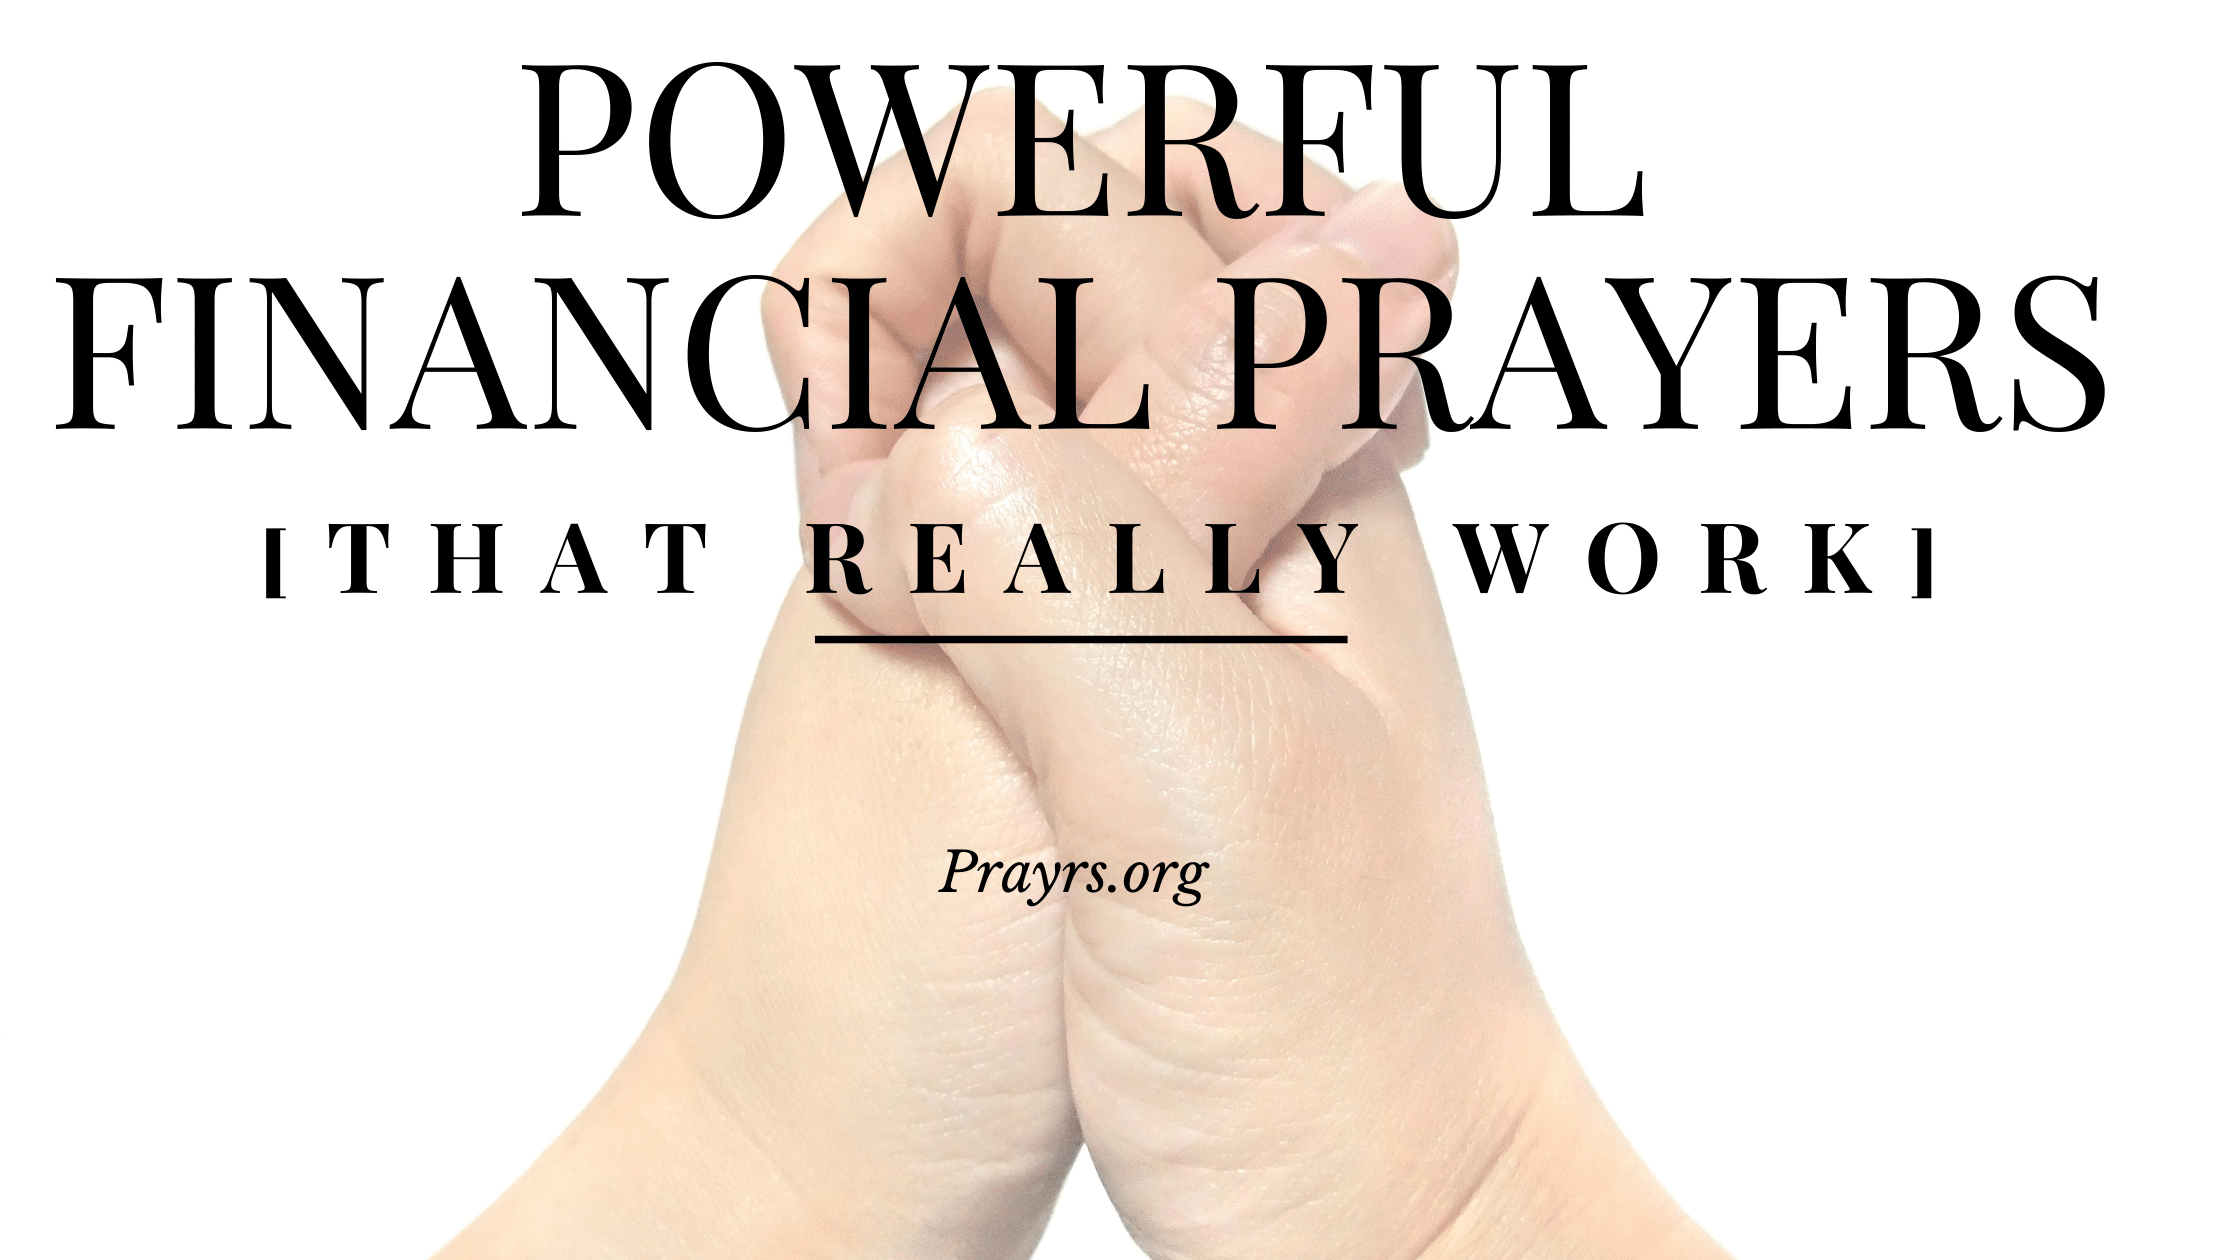 Powerful Financial Prayers that Really Work